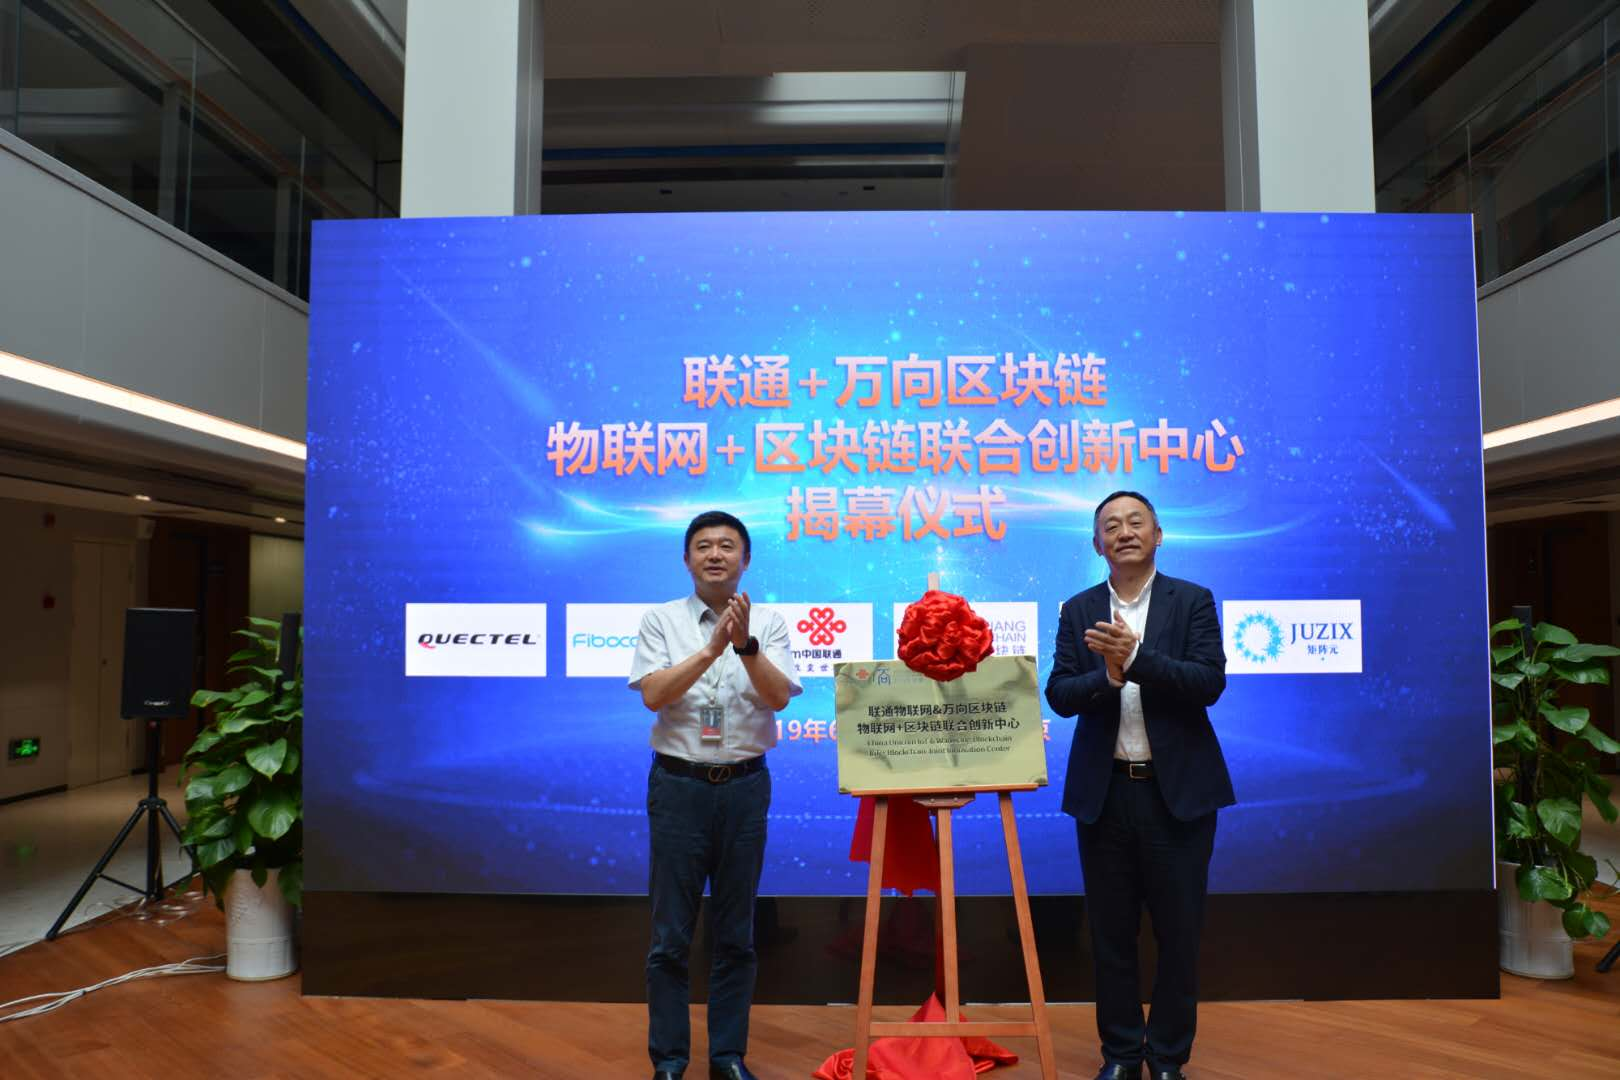 China Unicom IoT x Wanxiang Blockchain: IoT & Blockchain Joint Innovation Center is Officially Formed